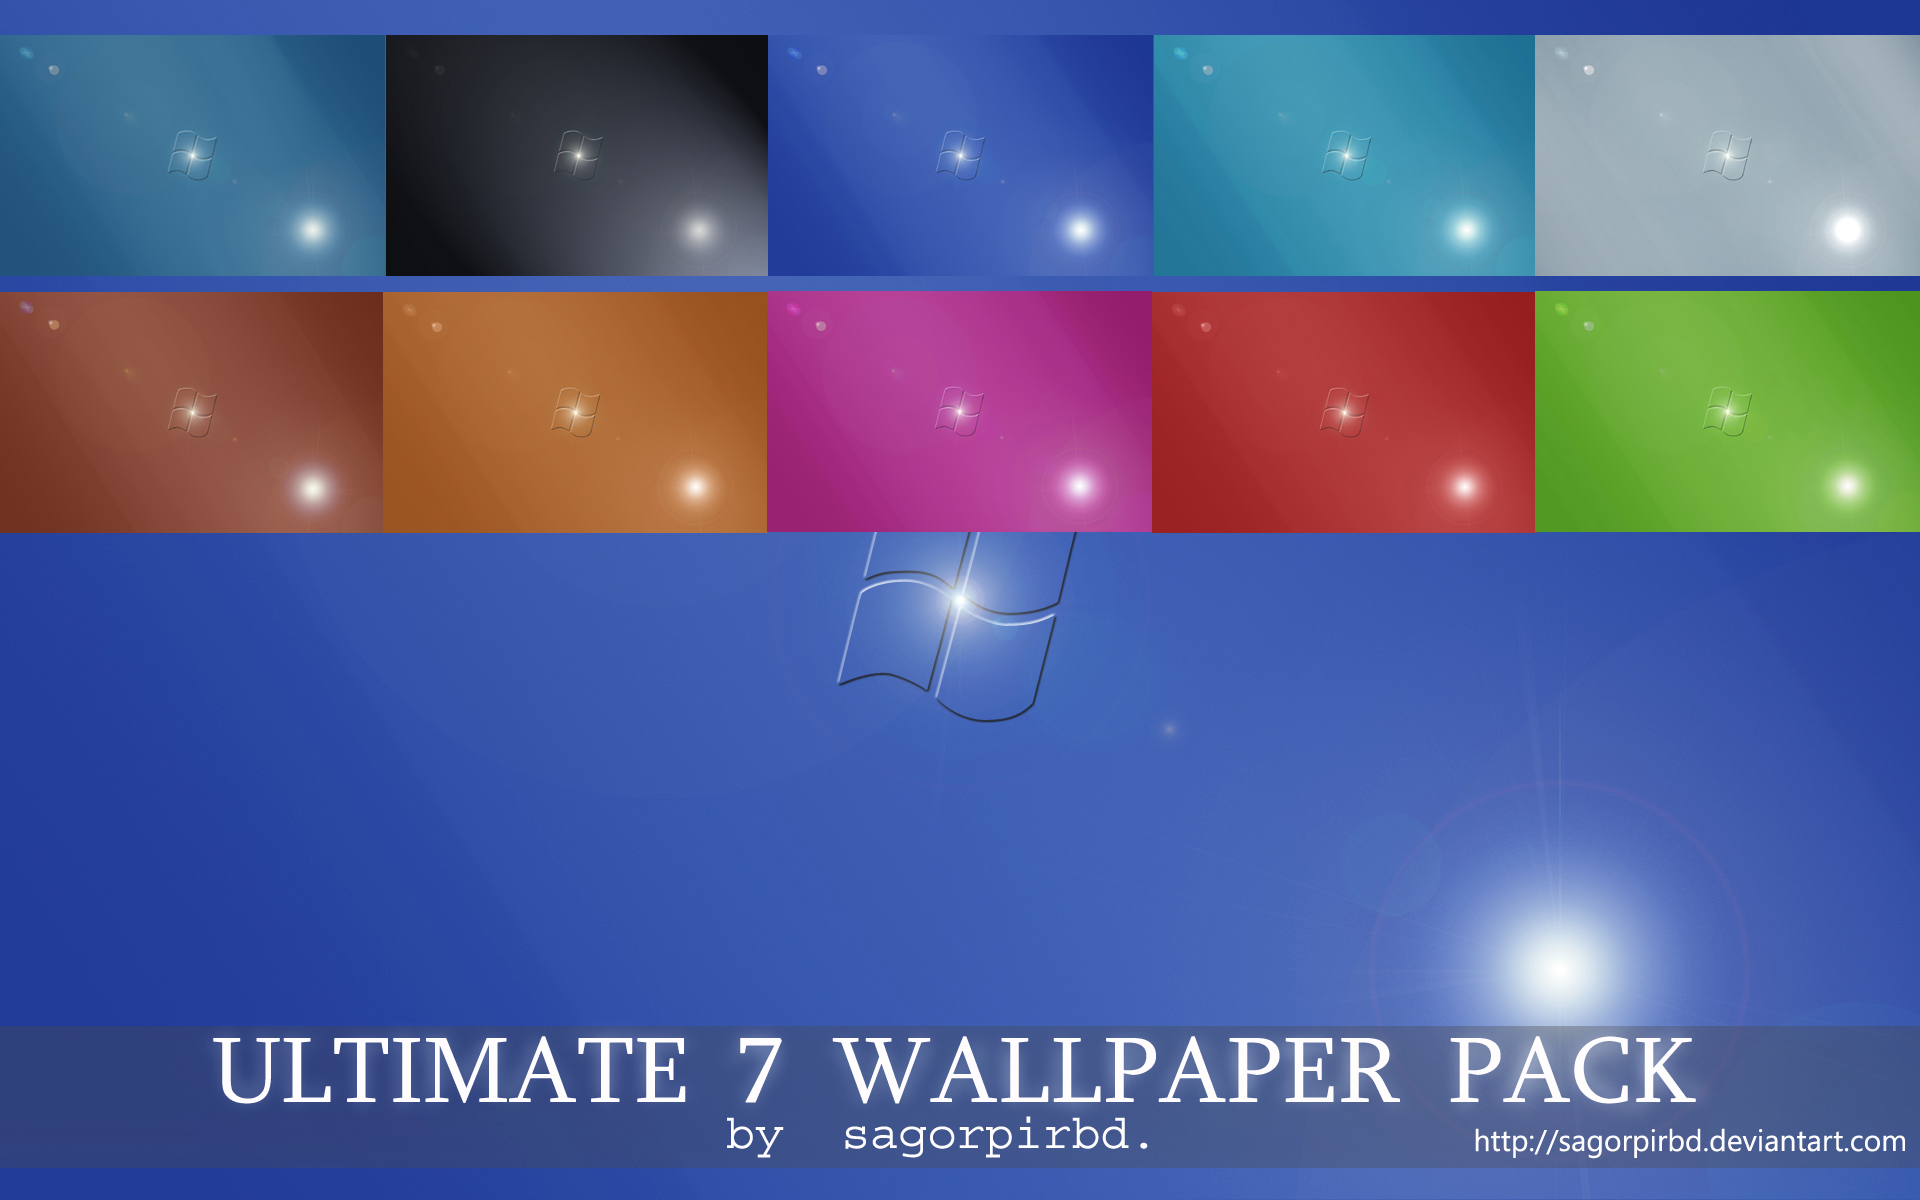 Ultimate 7 Wallpaper Pack_2 by sagorpirbd